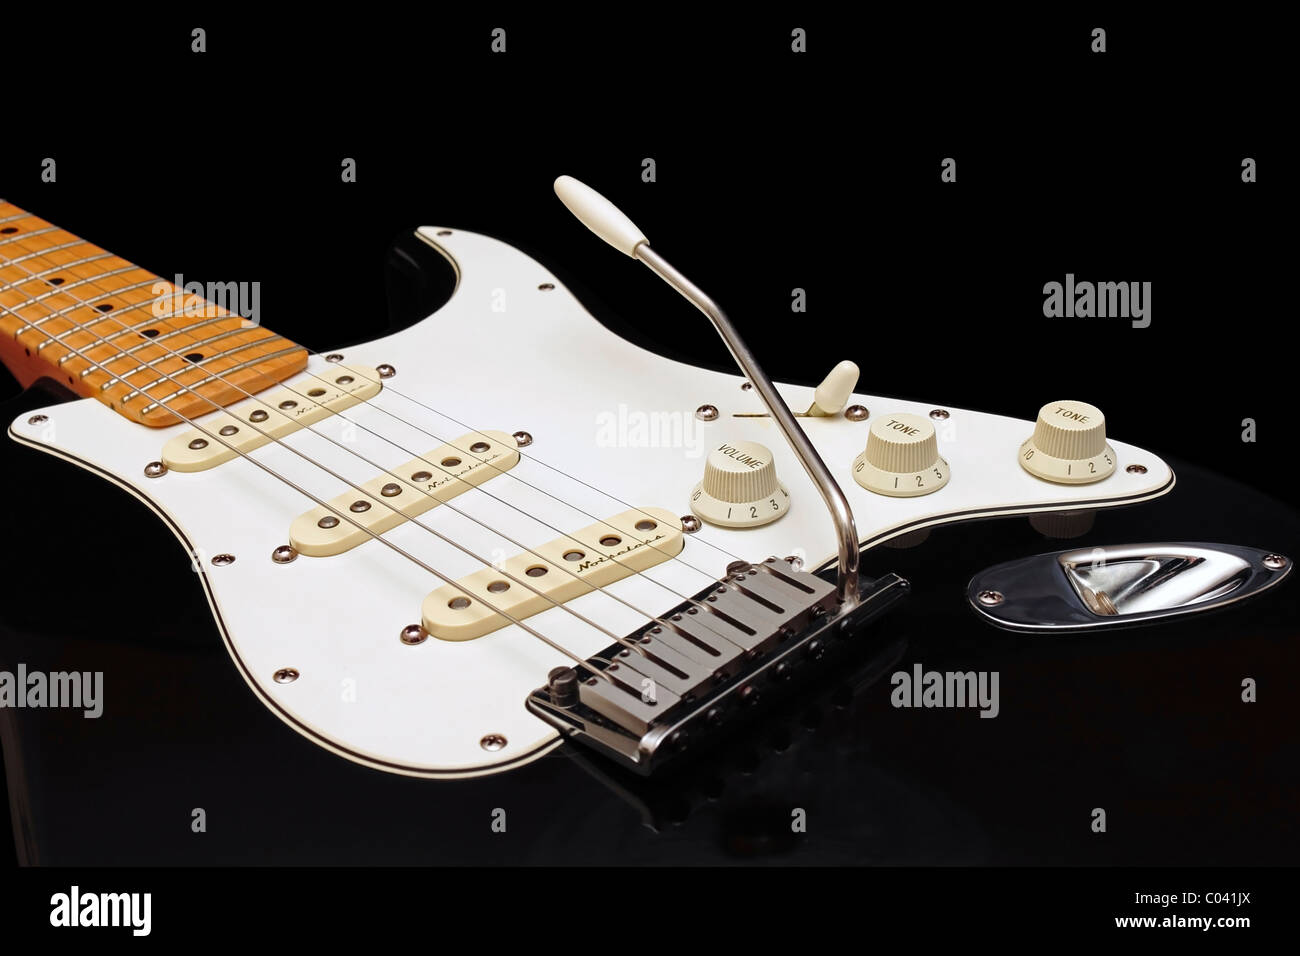 Stratocaster Stock Photos Images Alamy Wiring A Fender Fitting Pickups And Volume Tone Black American Standard With Retro Fitted Noiseless On Background